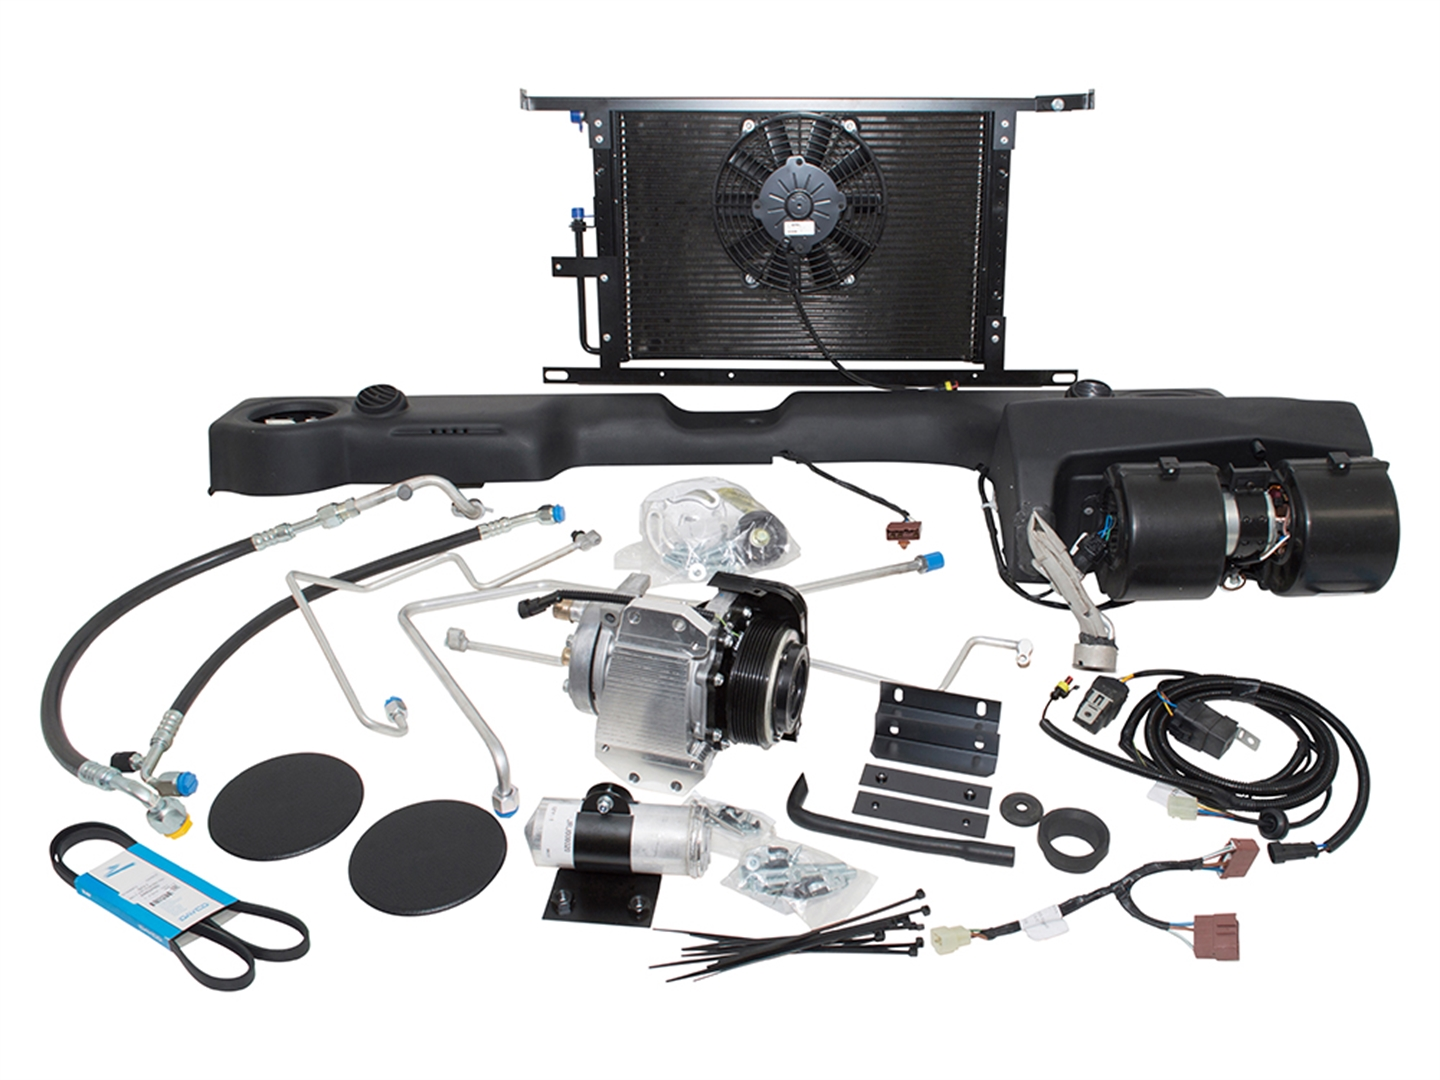 air conditioning kit for defender 300 tdi lhd devon 4x4 universal heated seat wiring